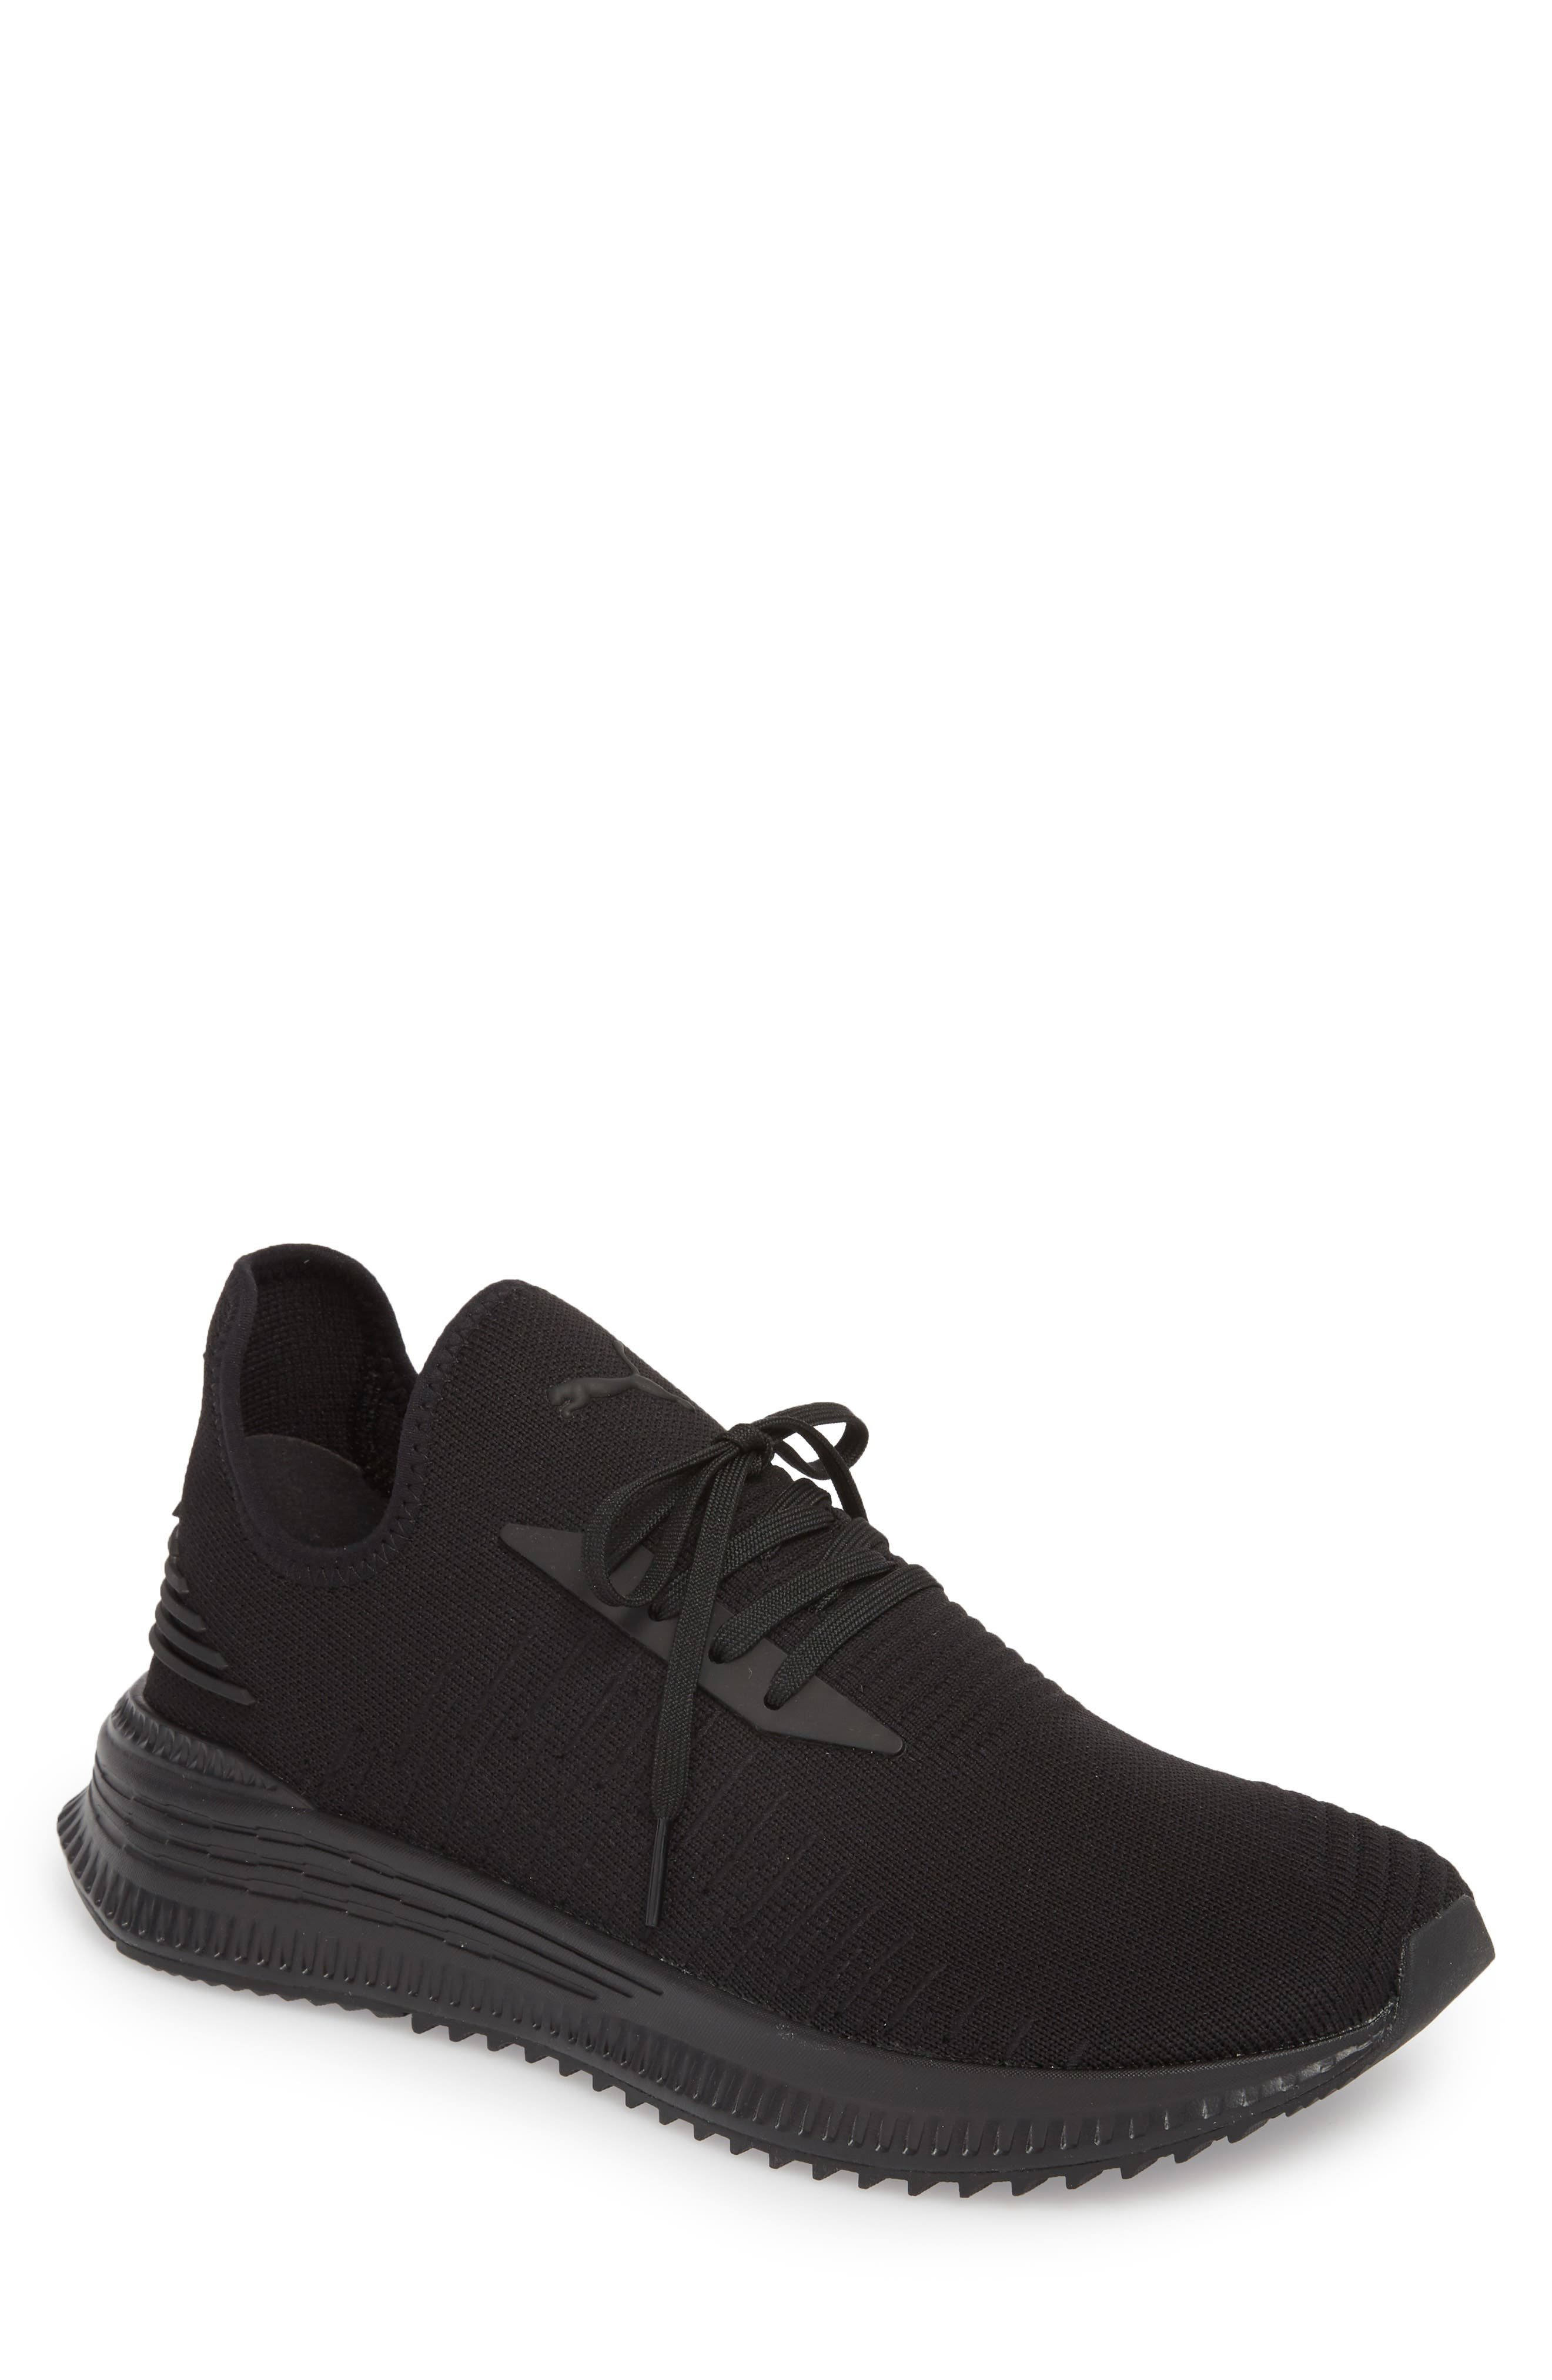 AVID evoKNIT Sneaker,                             Main thumbnail 1, color,                             Black/ Black